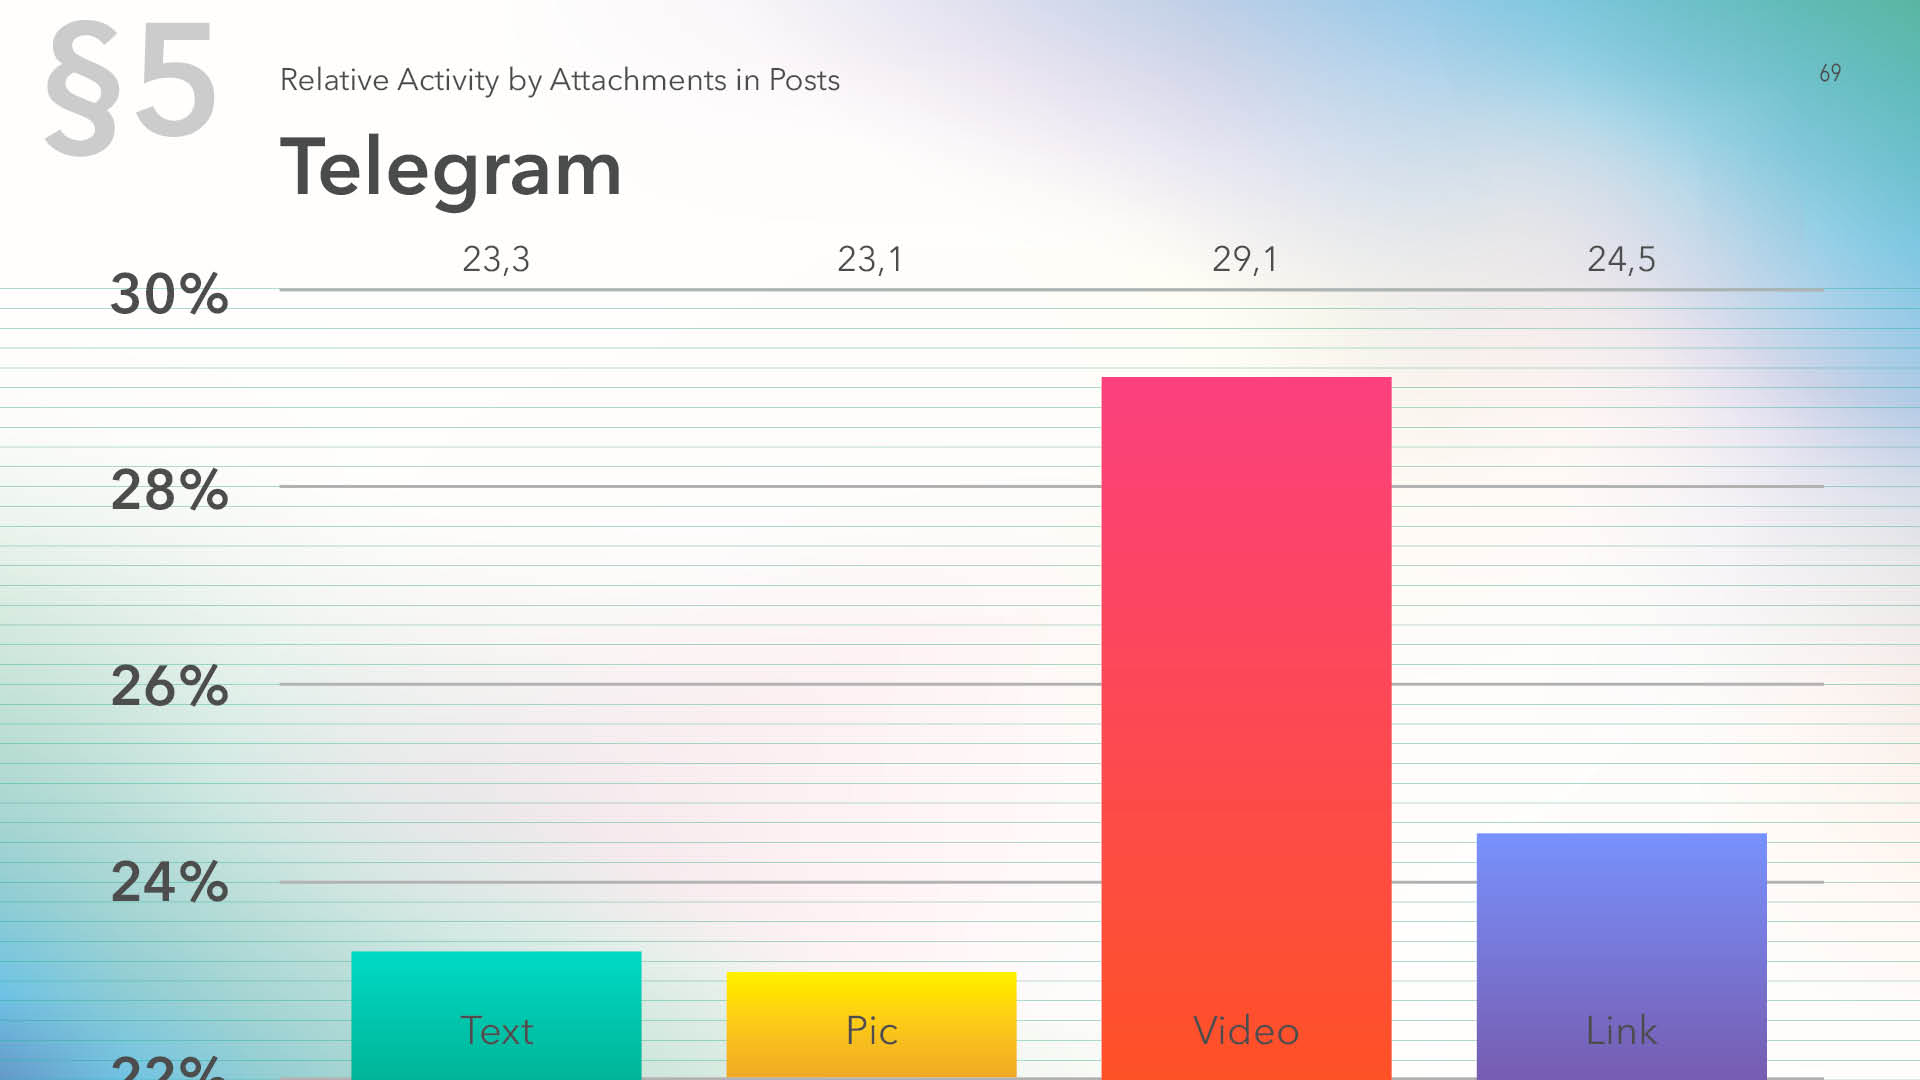 Telegram relative activity by content type in posts for 2019